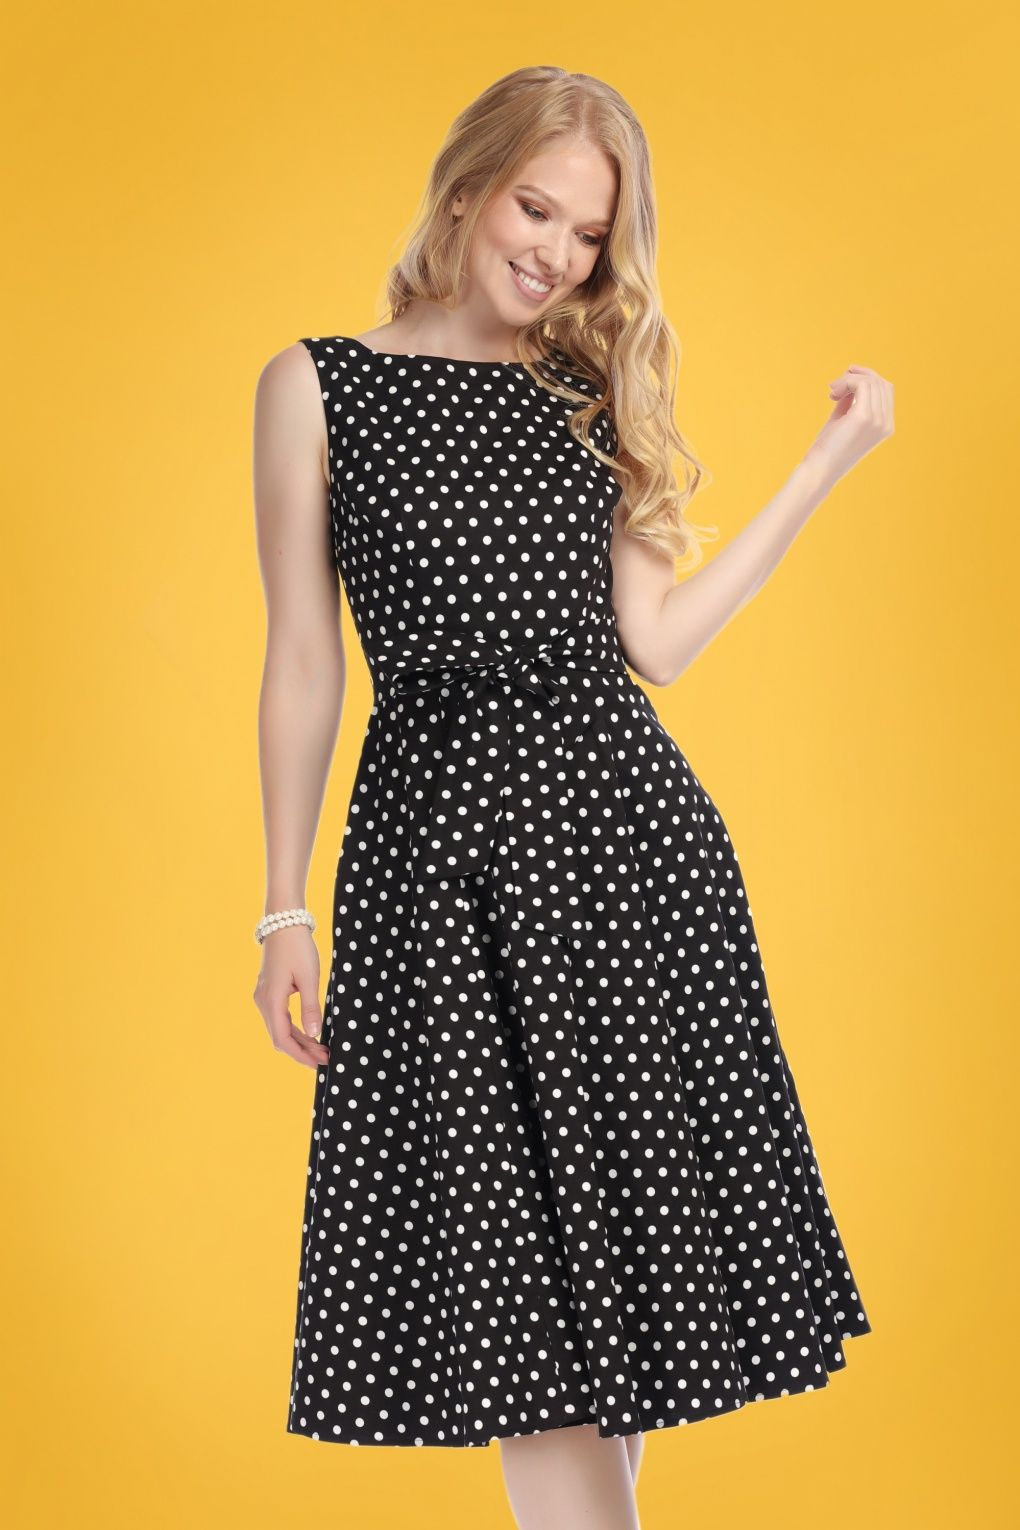 c373e7d25ddec Swing into spring in this 50s Frances Polka Dot Swing Dress in Black!  Frances features a fitted top with an elegant boat neck, tie straps at the  waist and a ...